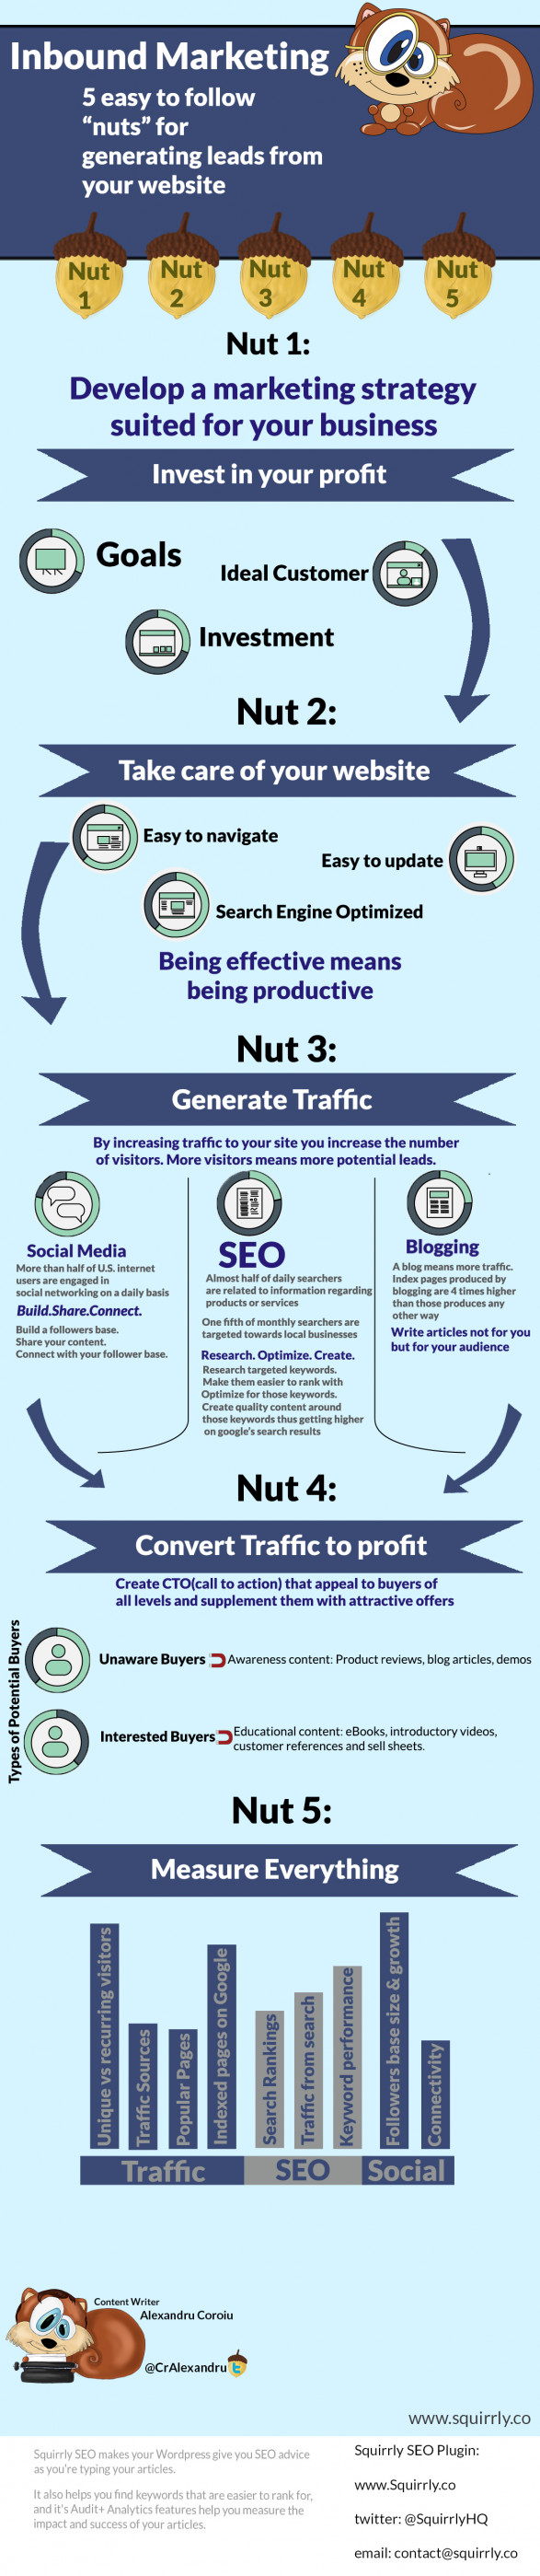 5 Tips to get a higher lead generation from your website